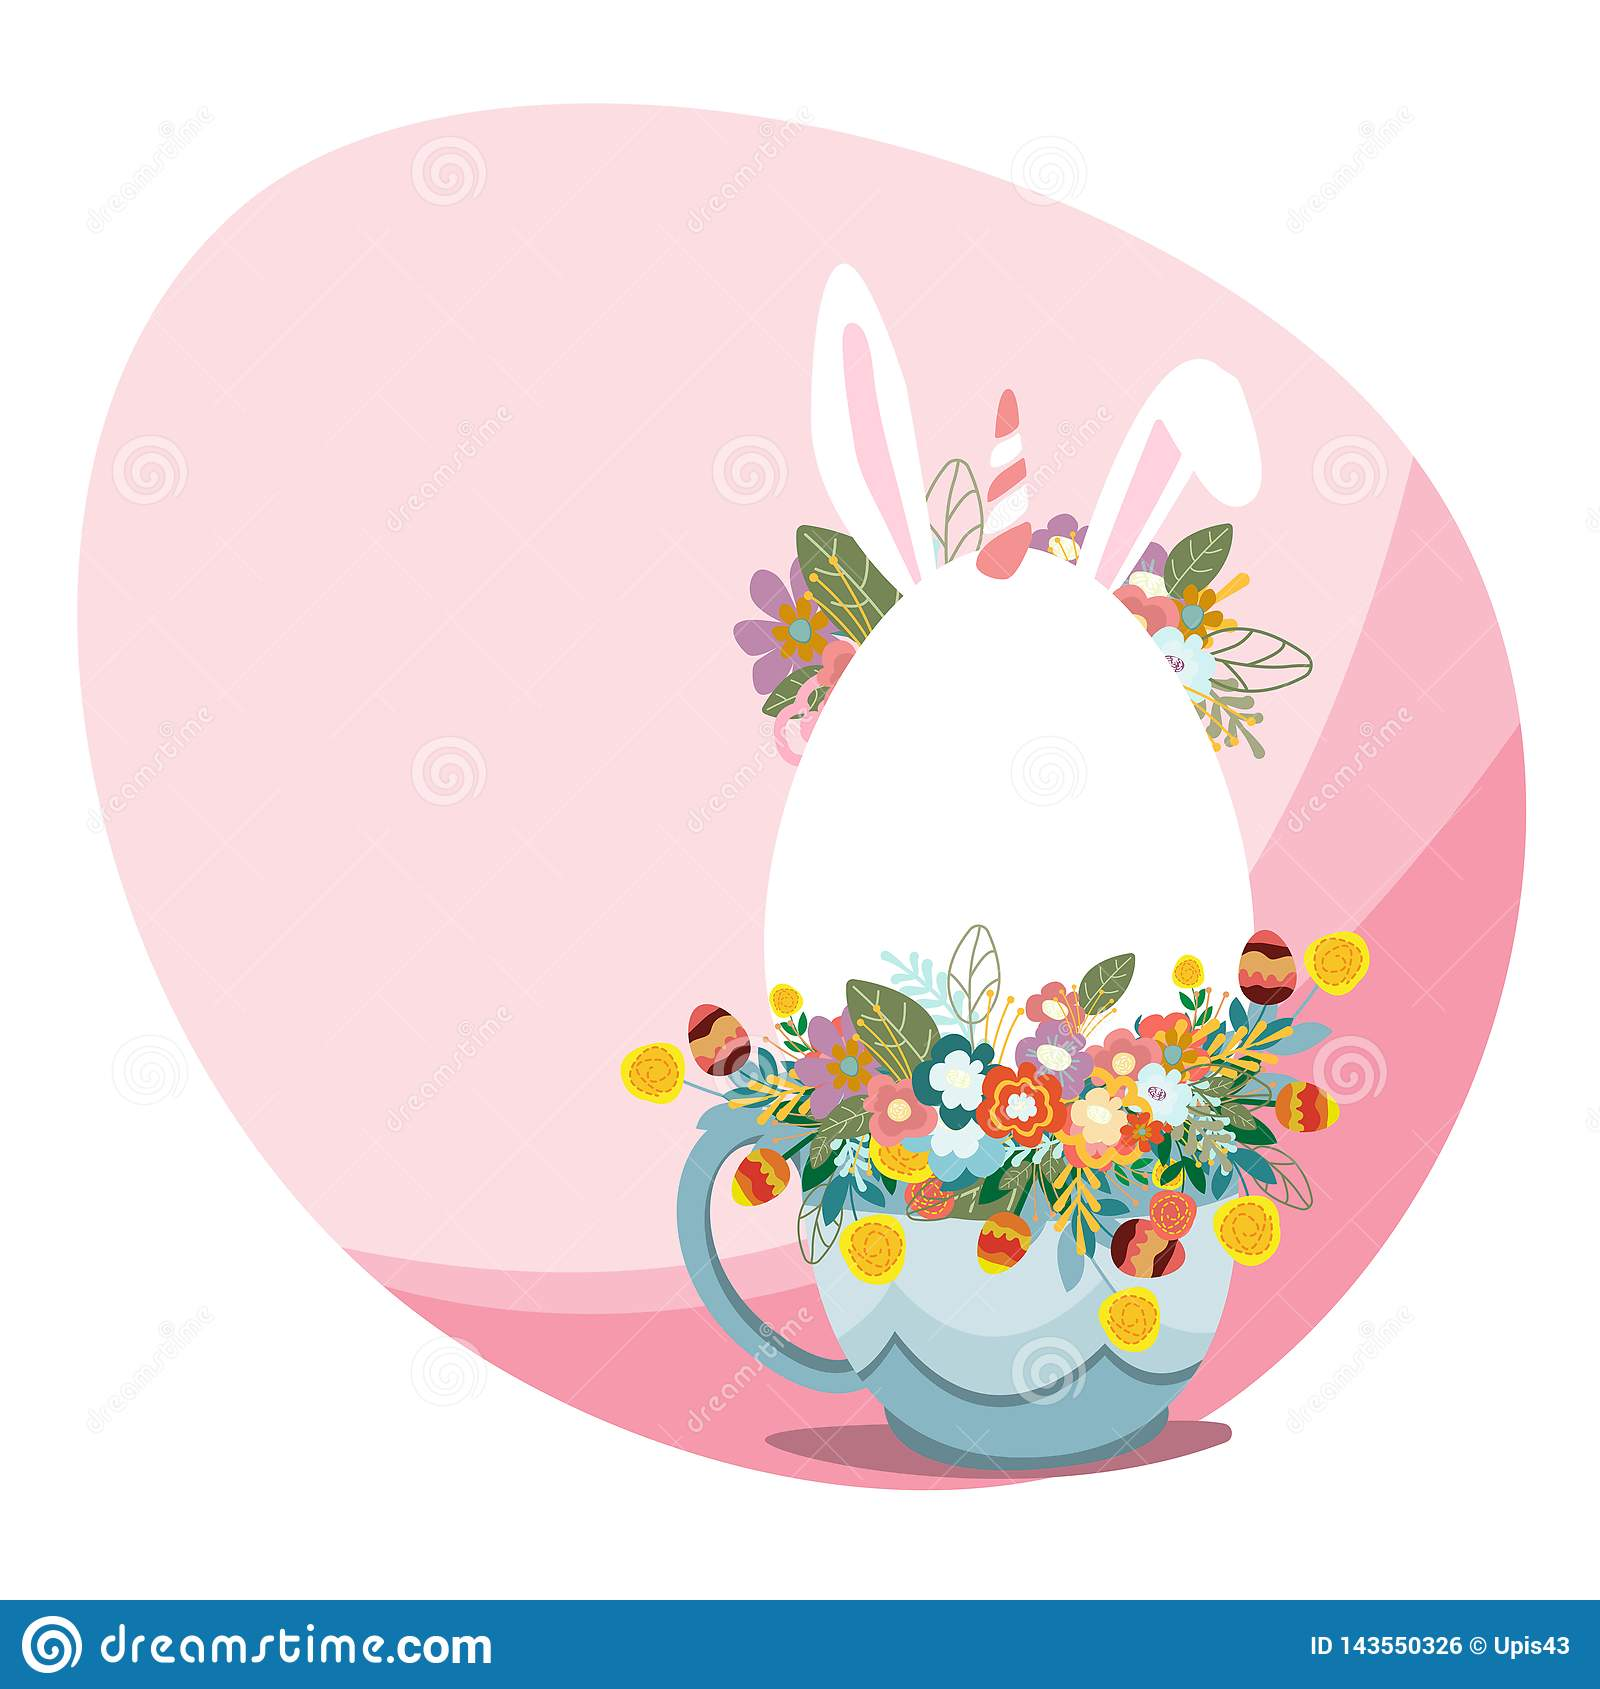 Happy Easter Greeting Card vector art illustration. Spring disign